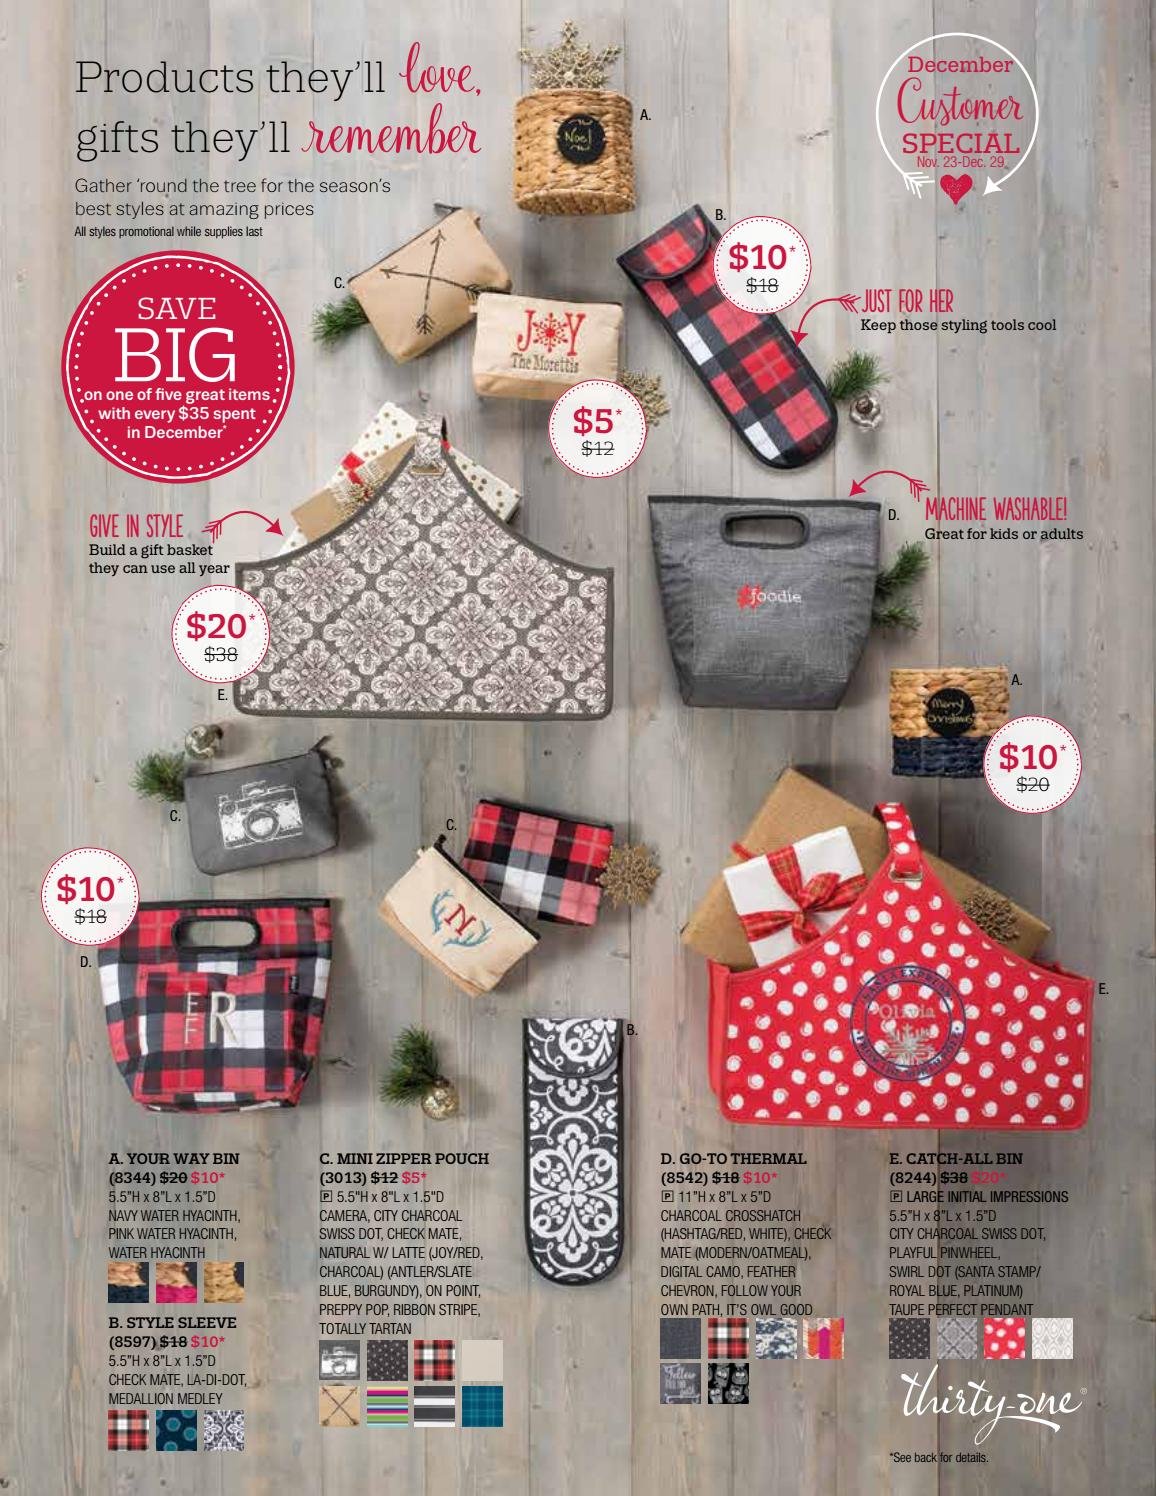 Thirty one november customer special 2014 - Thirty One December 2016 Specials By Carrie Saunder S Thirtyone Gifts Issuu